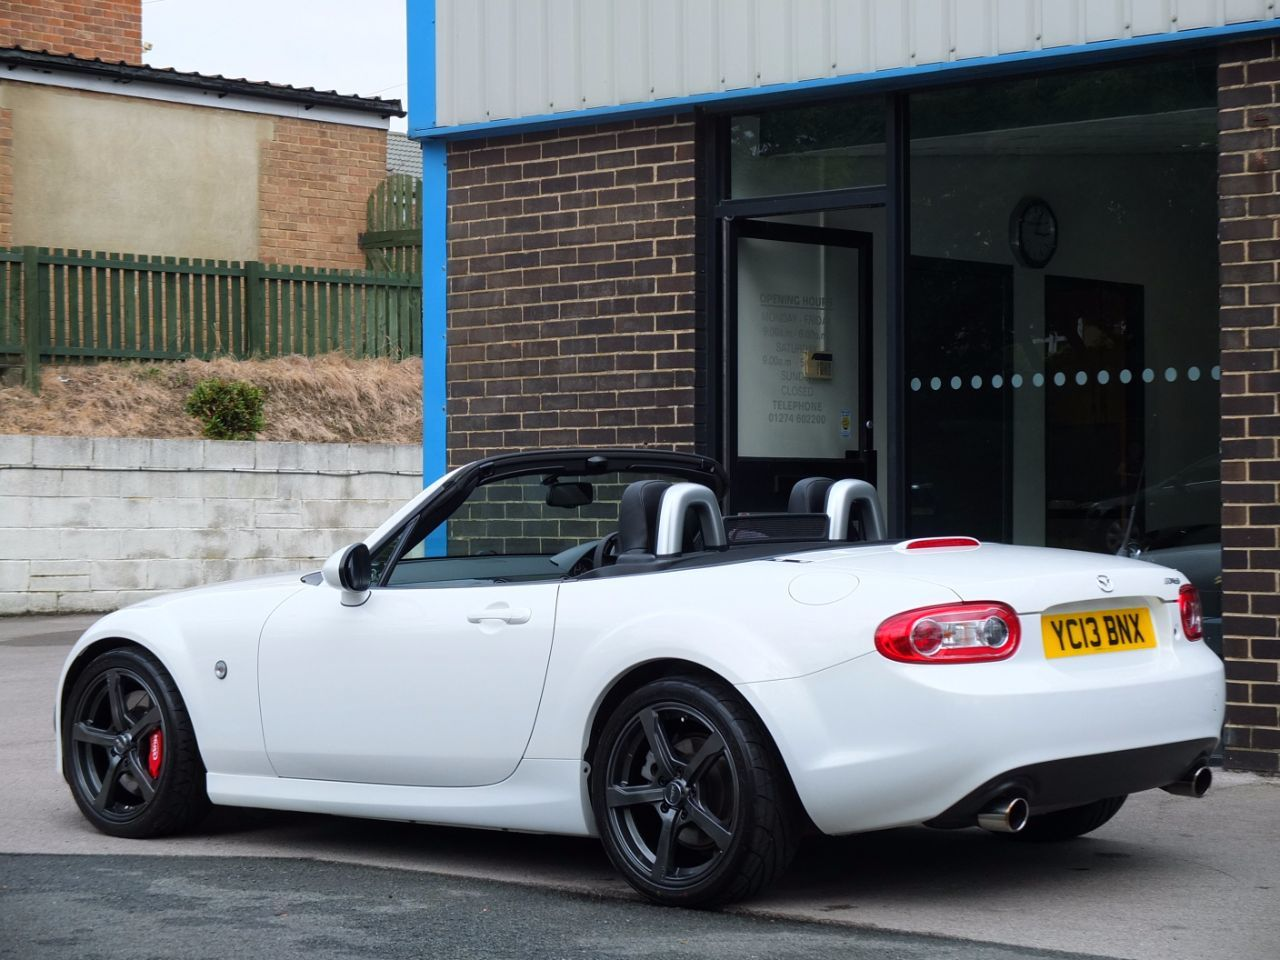 Mazda MX-5 2.0i Sport Tech Nav KIT PRO Supercharger 231bhp Convertible Petrol Crystal White Pearlescent